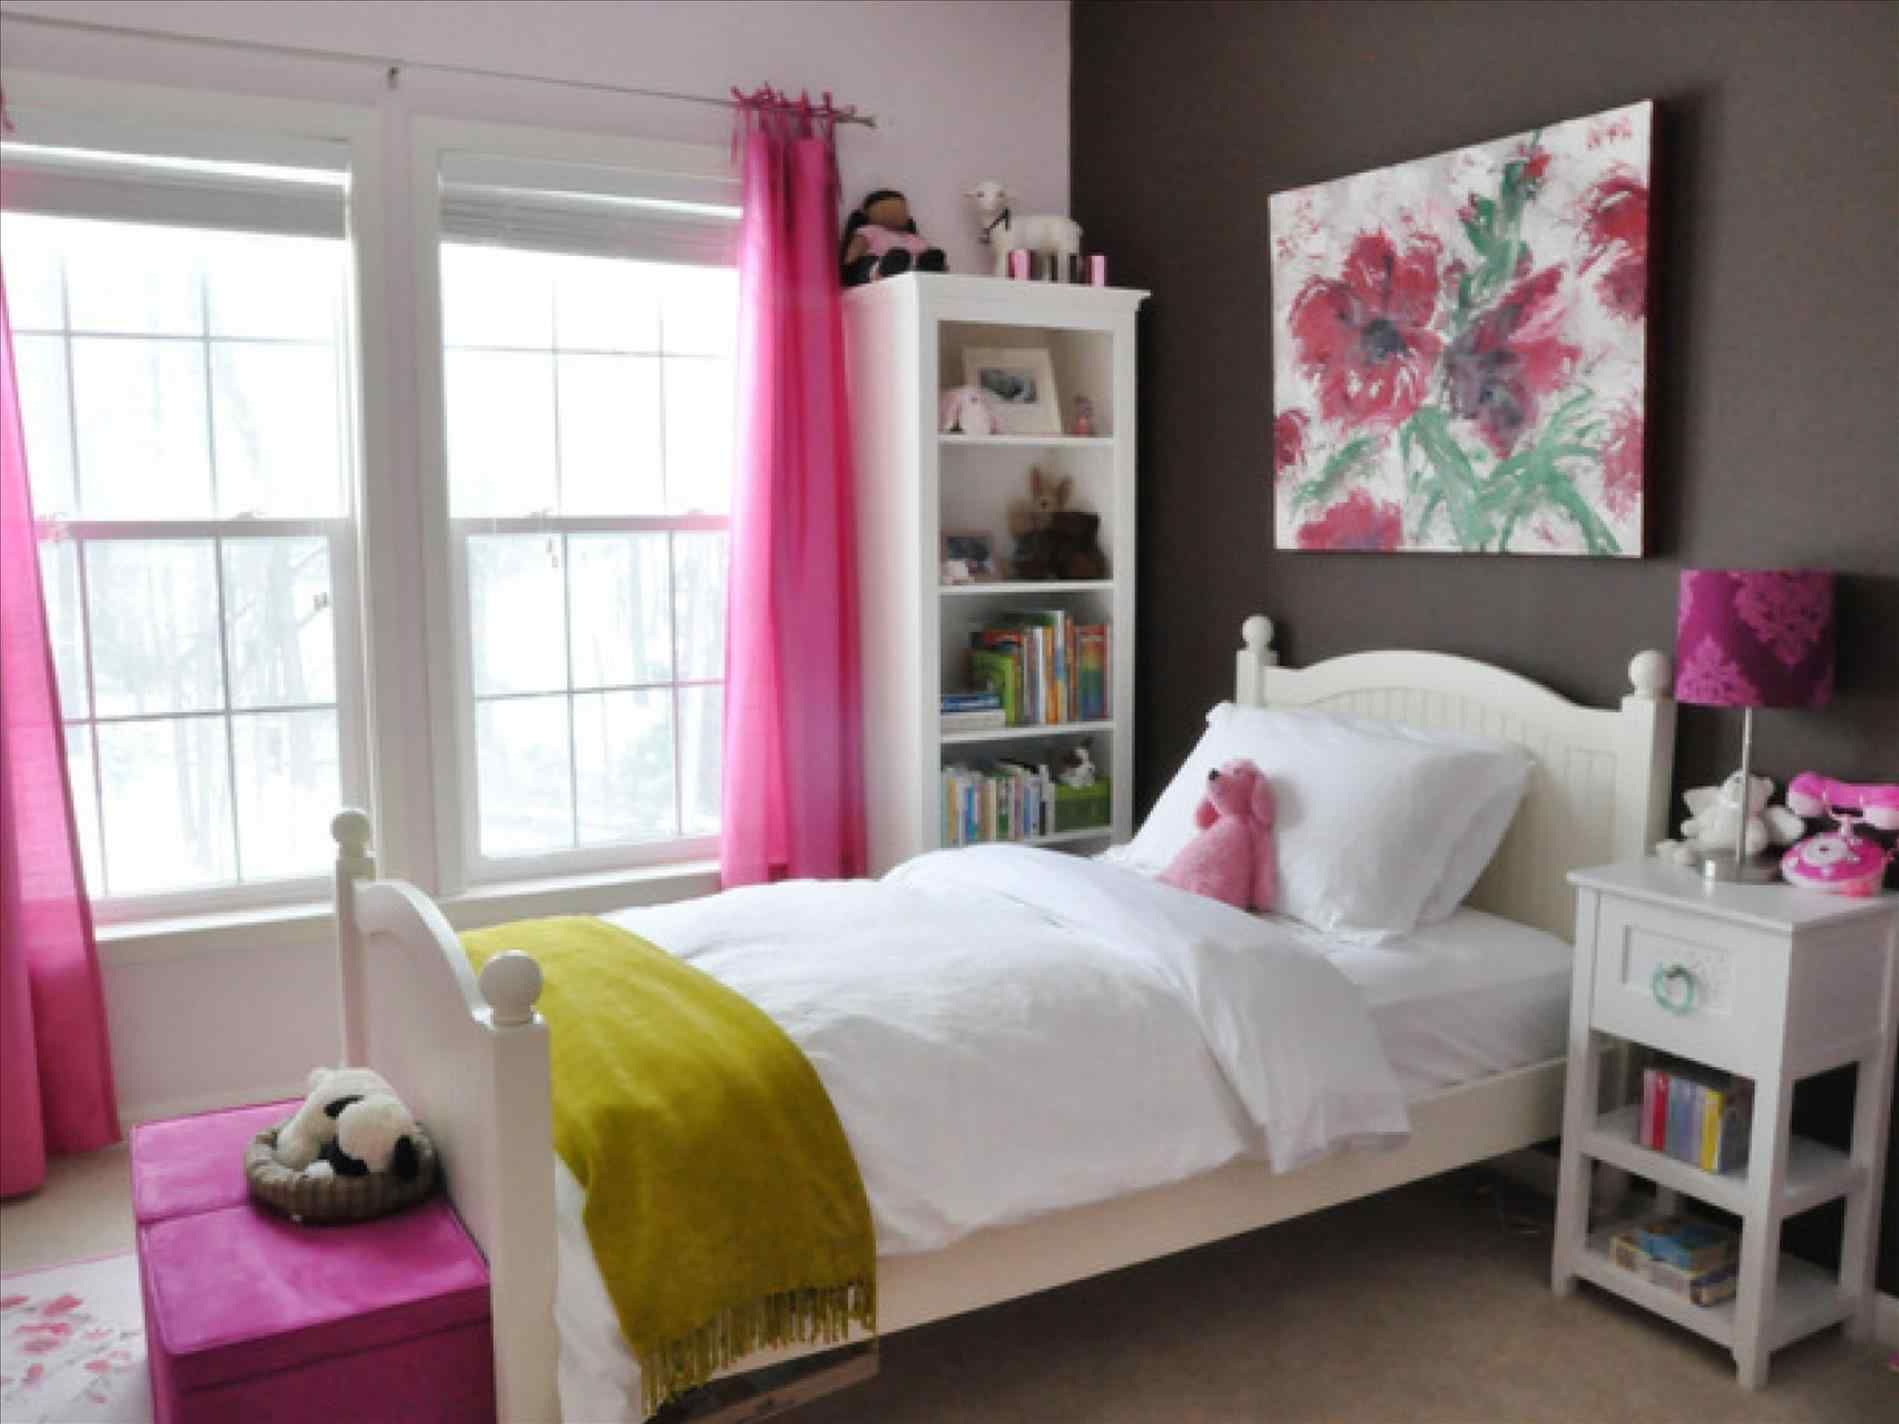 endearing teenage girls bedroom furniture designs beach bedroom themes for teenage girls endearing nice teenage bedroom design idea feat small bed combined black ceiling fans for decor on beach